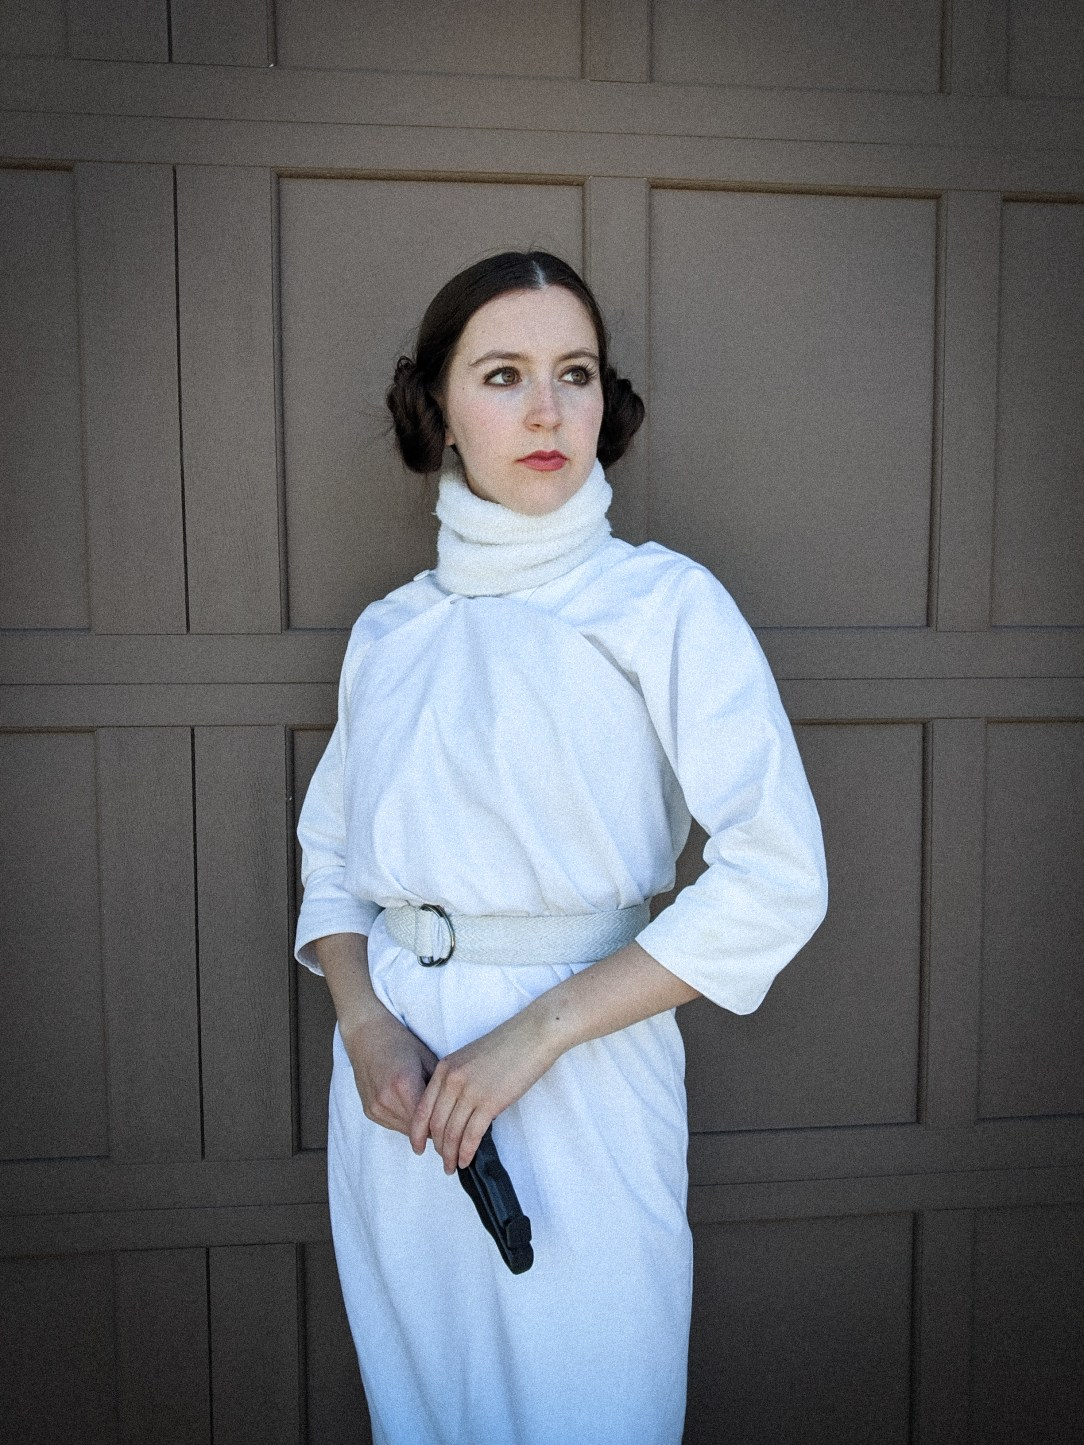 homemade costume, May the Fourth, Star Wars